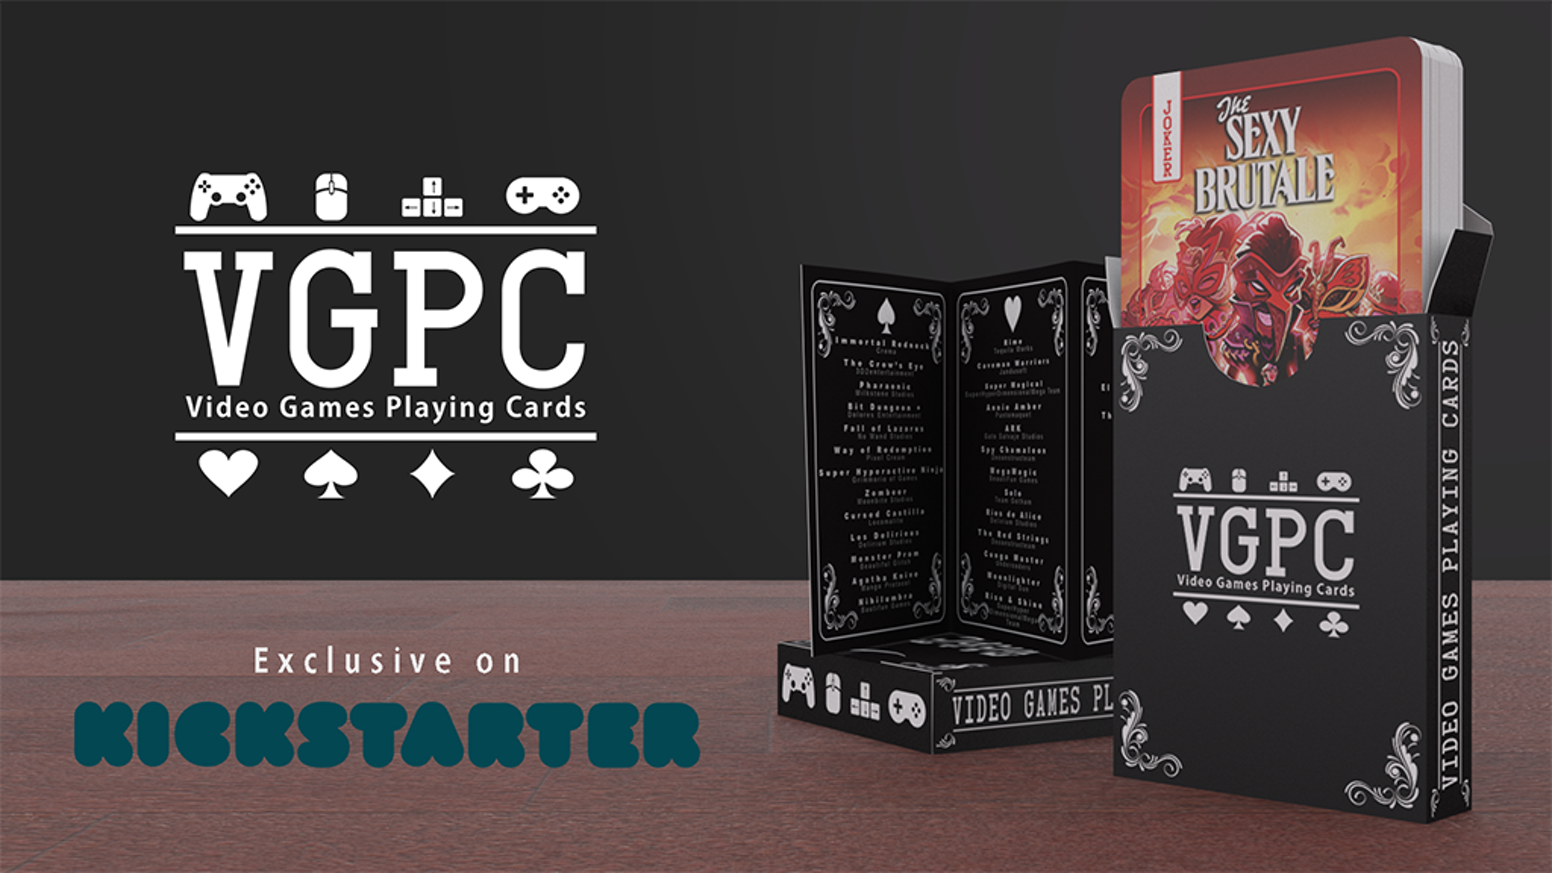 A deck featuring 54 video games for pc/console. Exclusive on Kickstarter